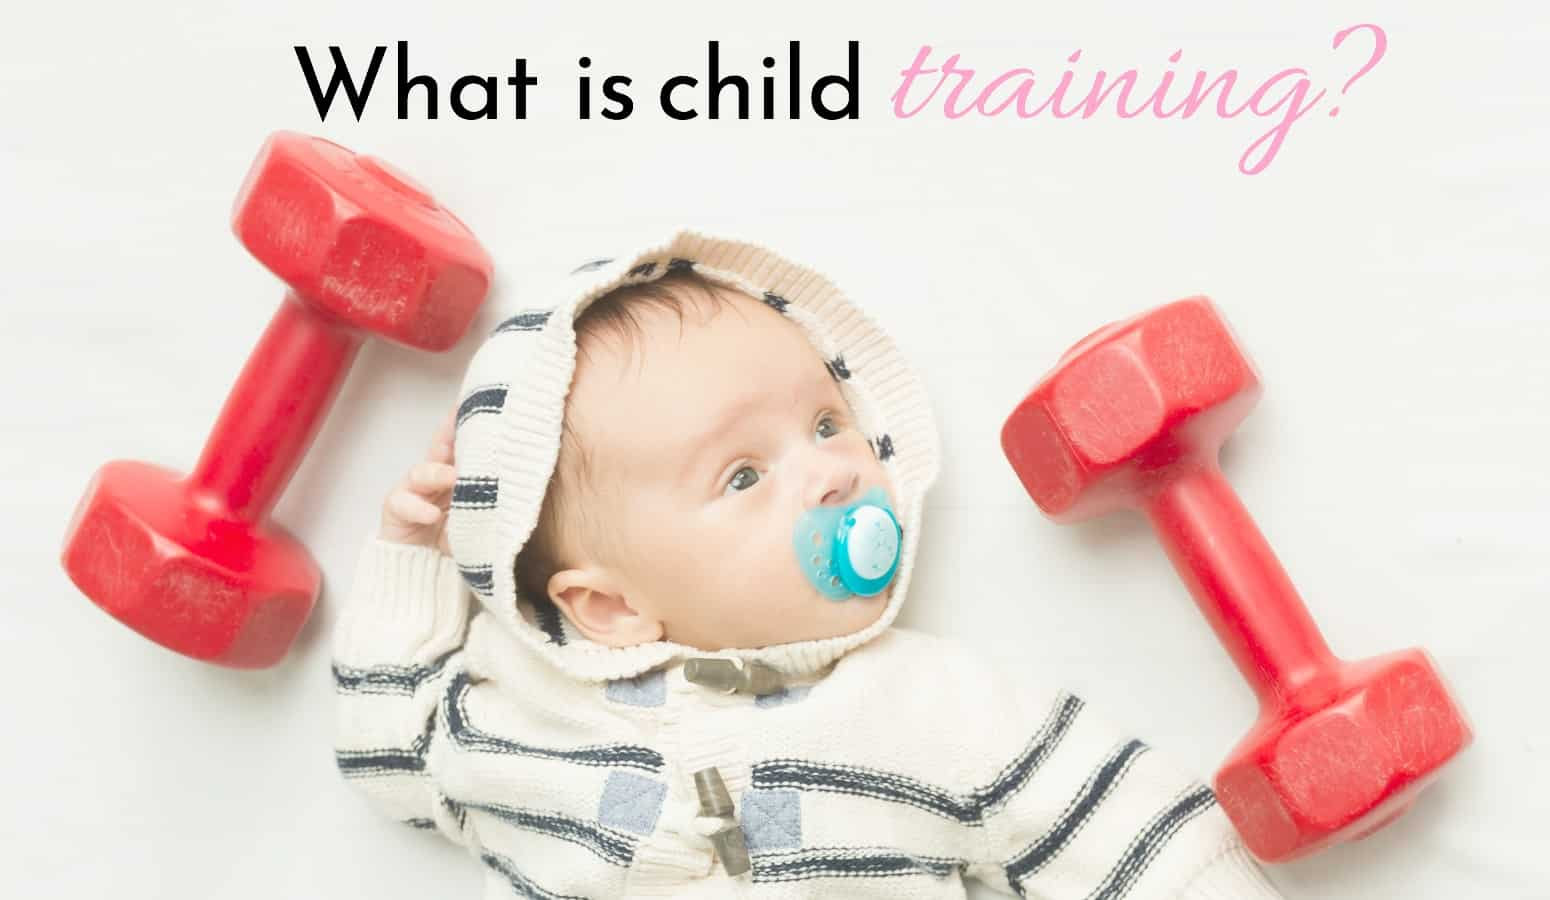 What is child training? Learn What child training is and why it's the most important part of good parenting and raising great kids.